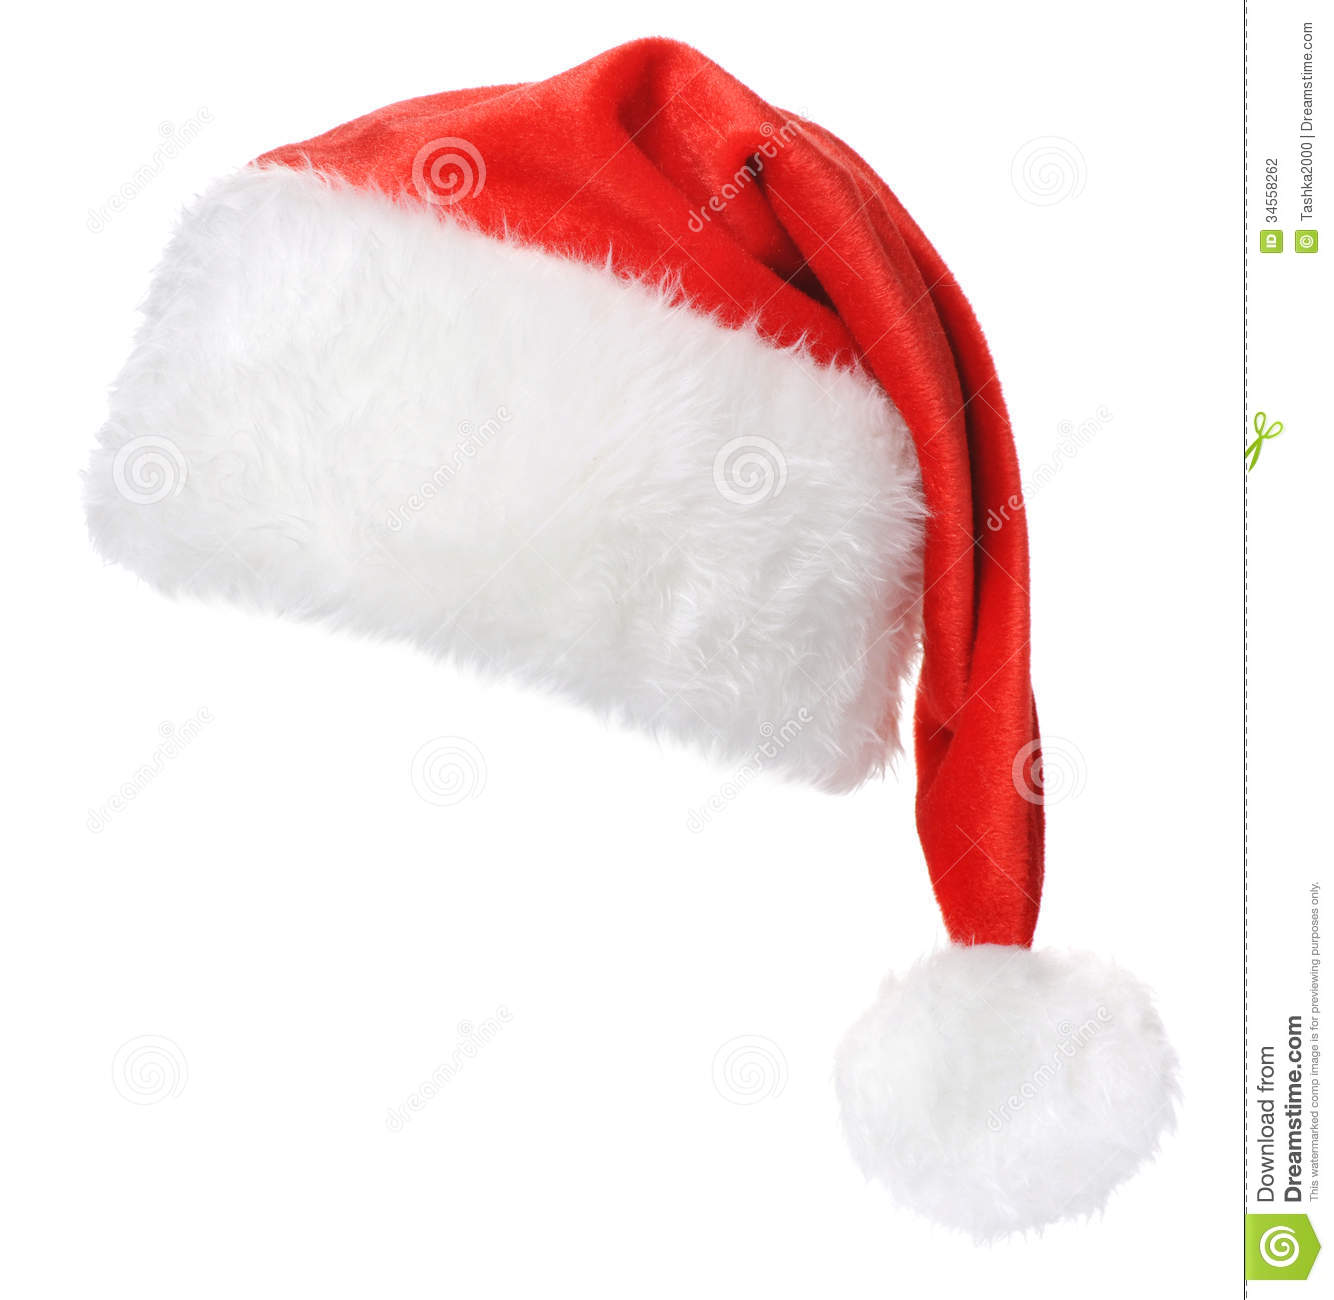 Santa Claus hat isolated on white background 7e7b32bb4ddf